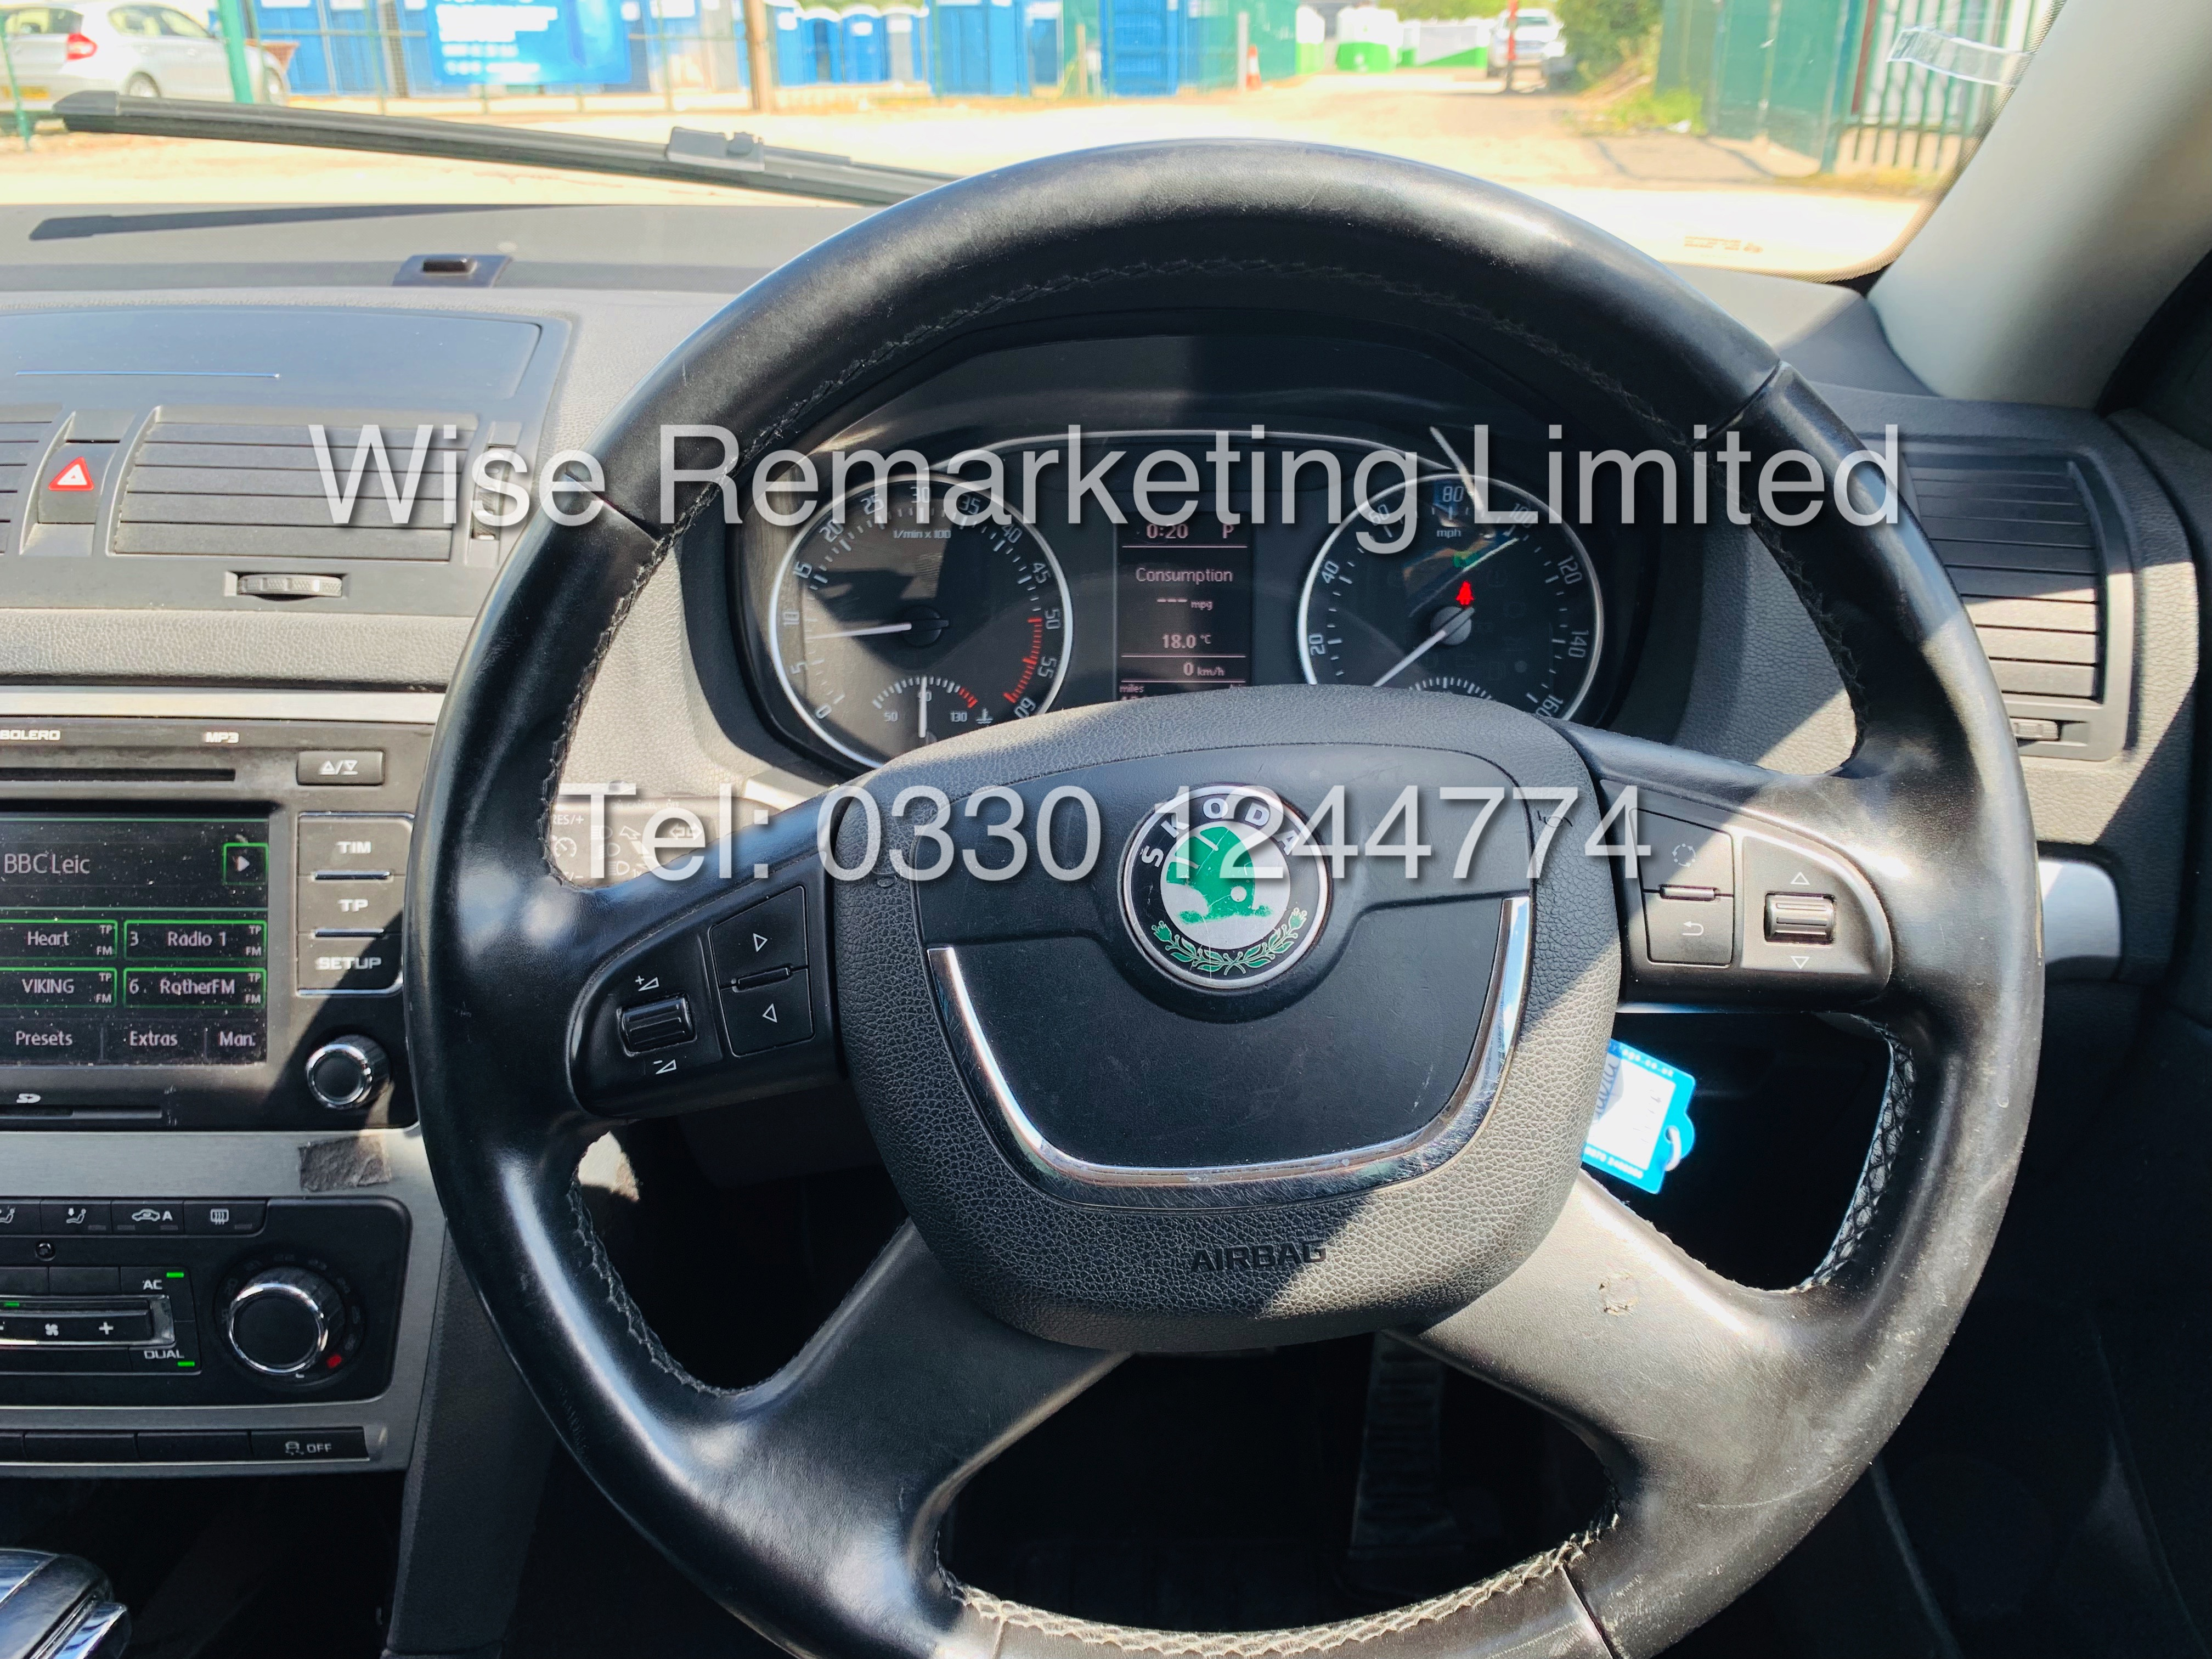 SKODA OCTAVIA (SCOUT) 2.0tdi DSG AUTOMATIC ESTATE / 2013 / 1 OWNER WITH FULL HISTORY / 140BHP / 4x4 - Image 14 of 14